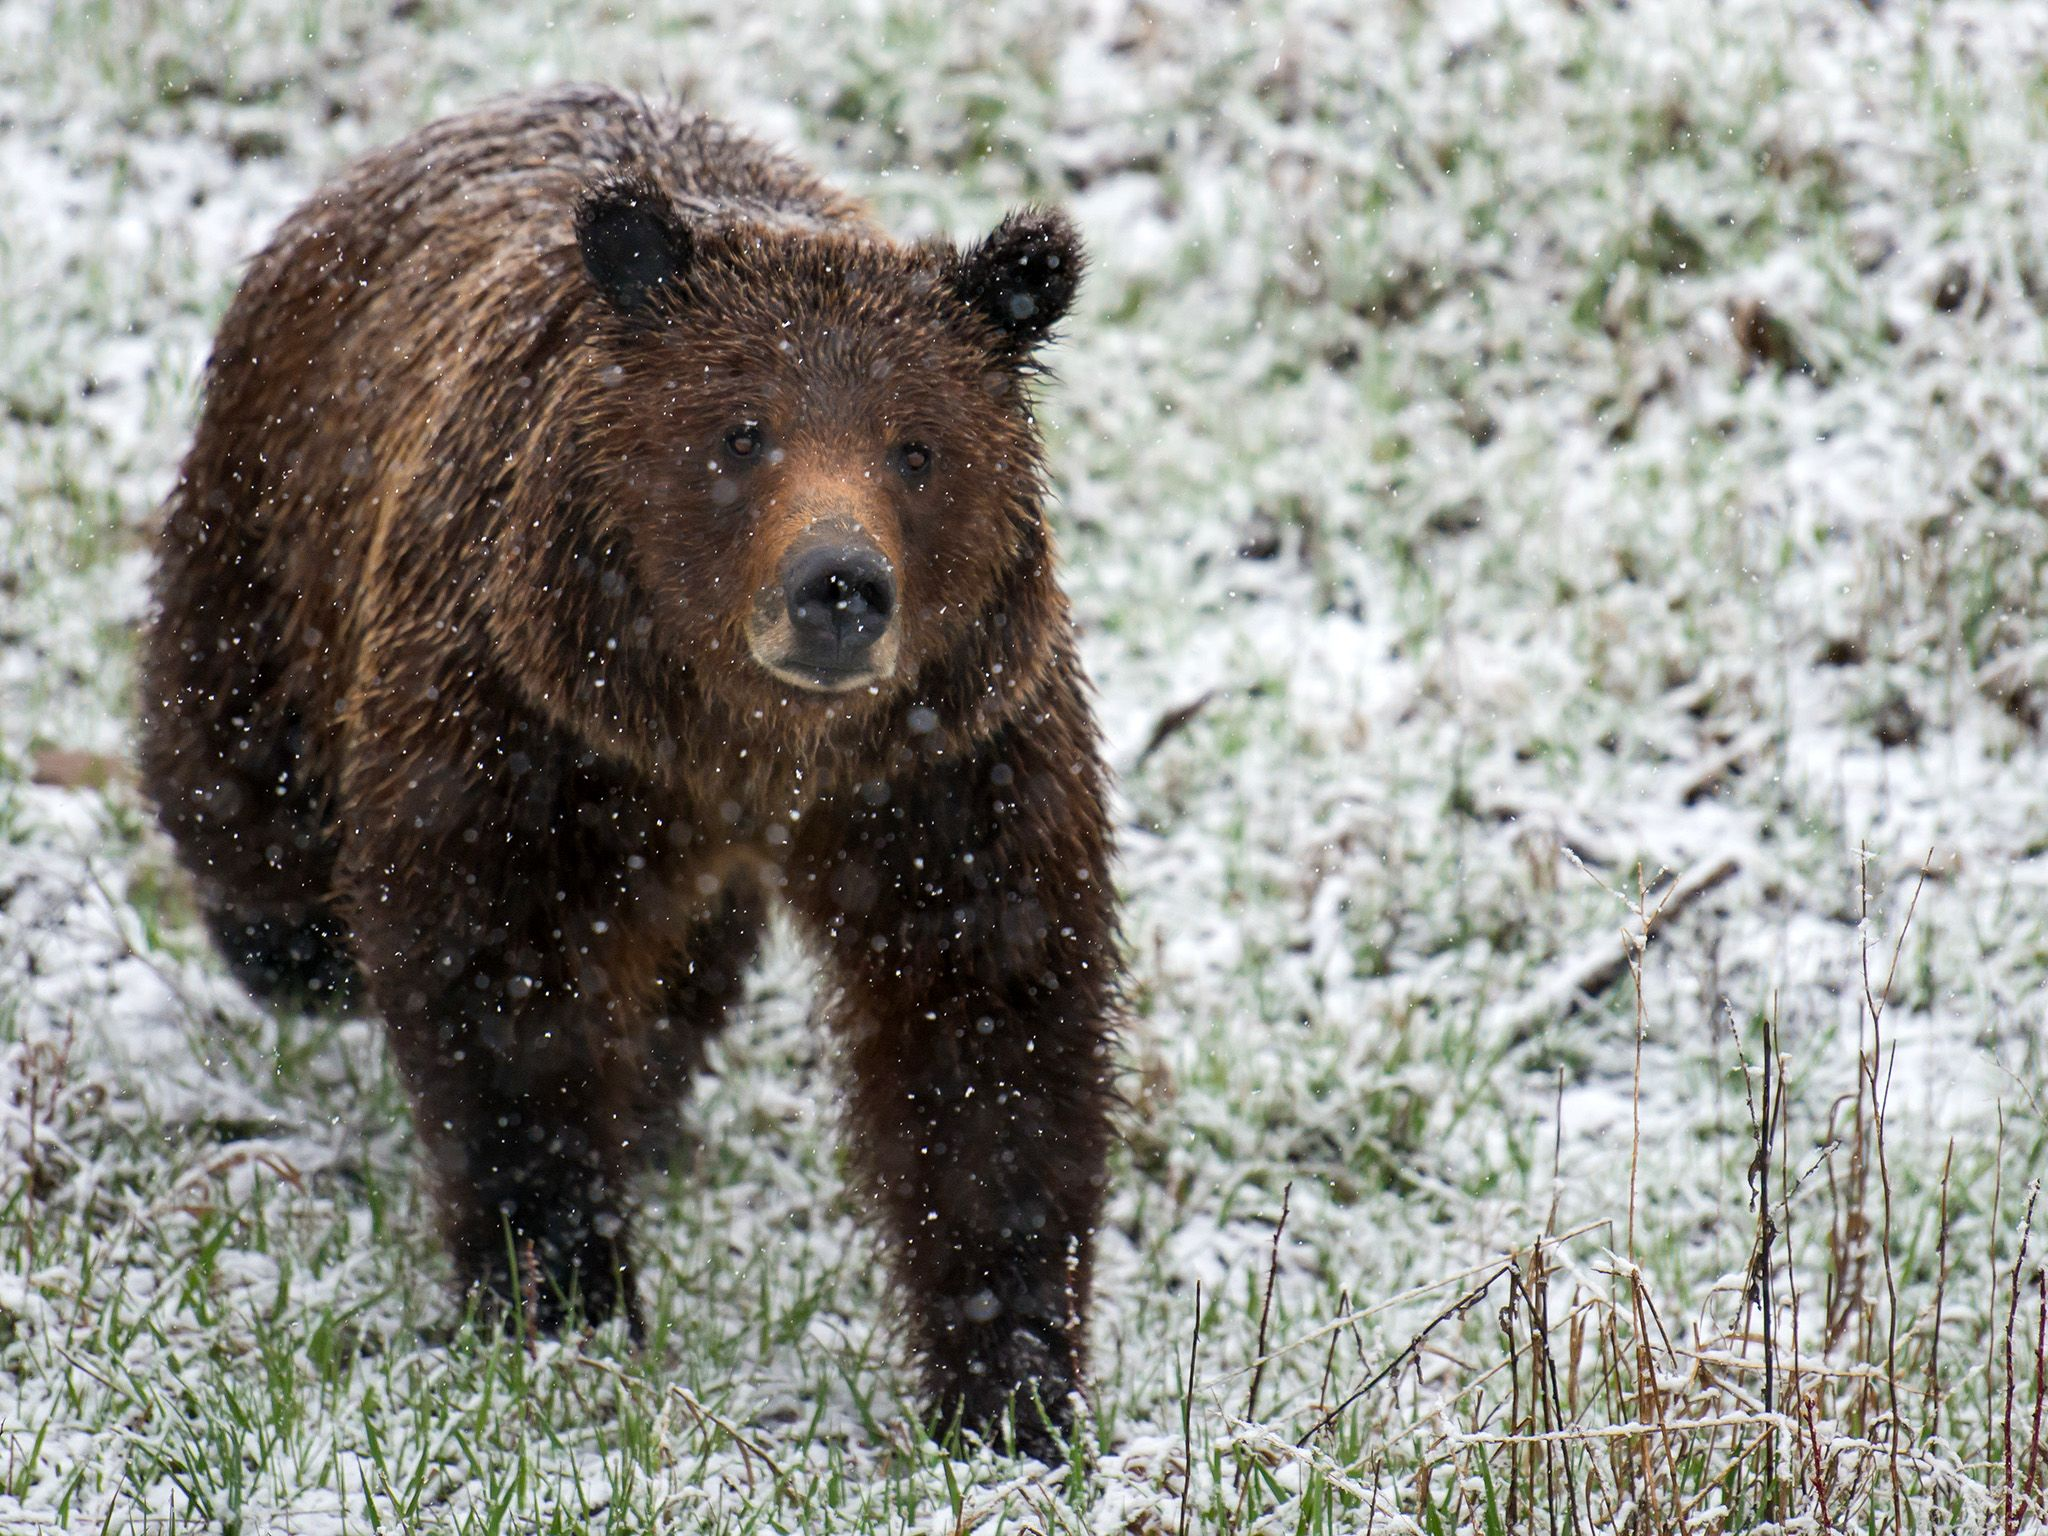 Grand Teton National Park, Wyo.: Brown bear in the early spring snow. This image is from Wild... [Photo of the day - April 2015]